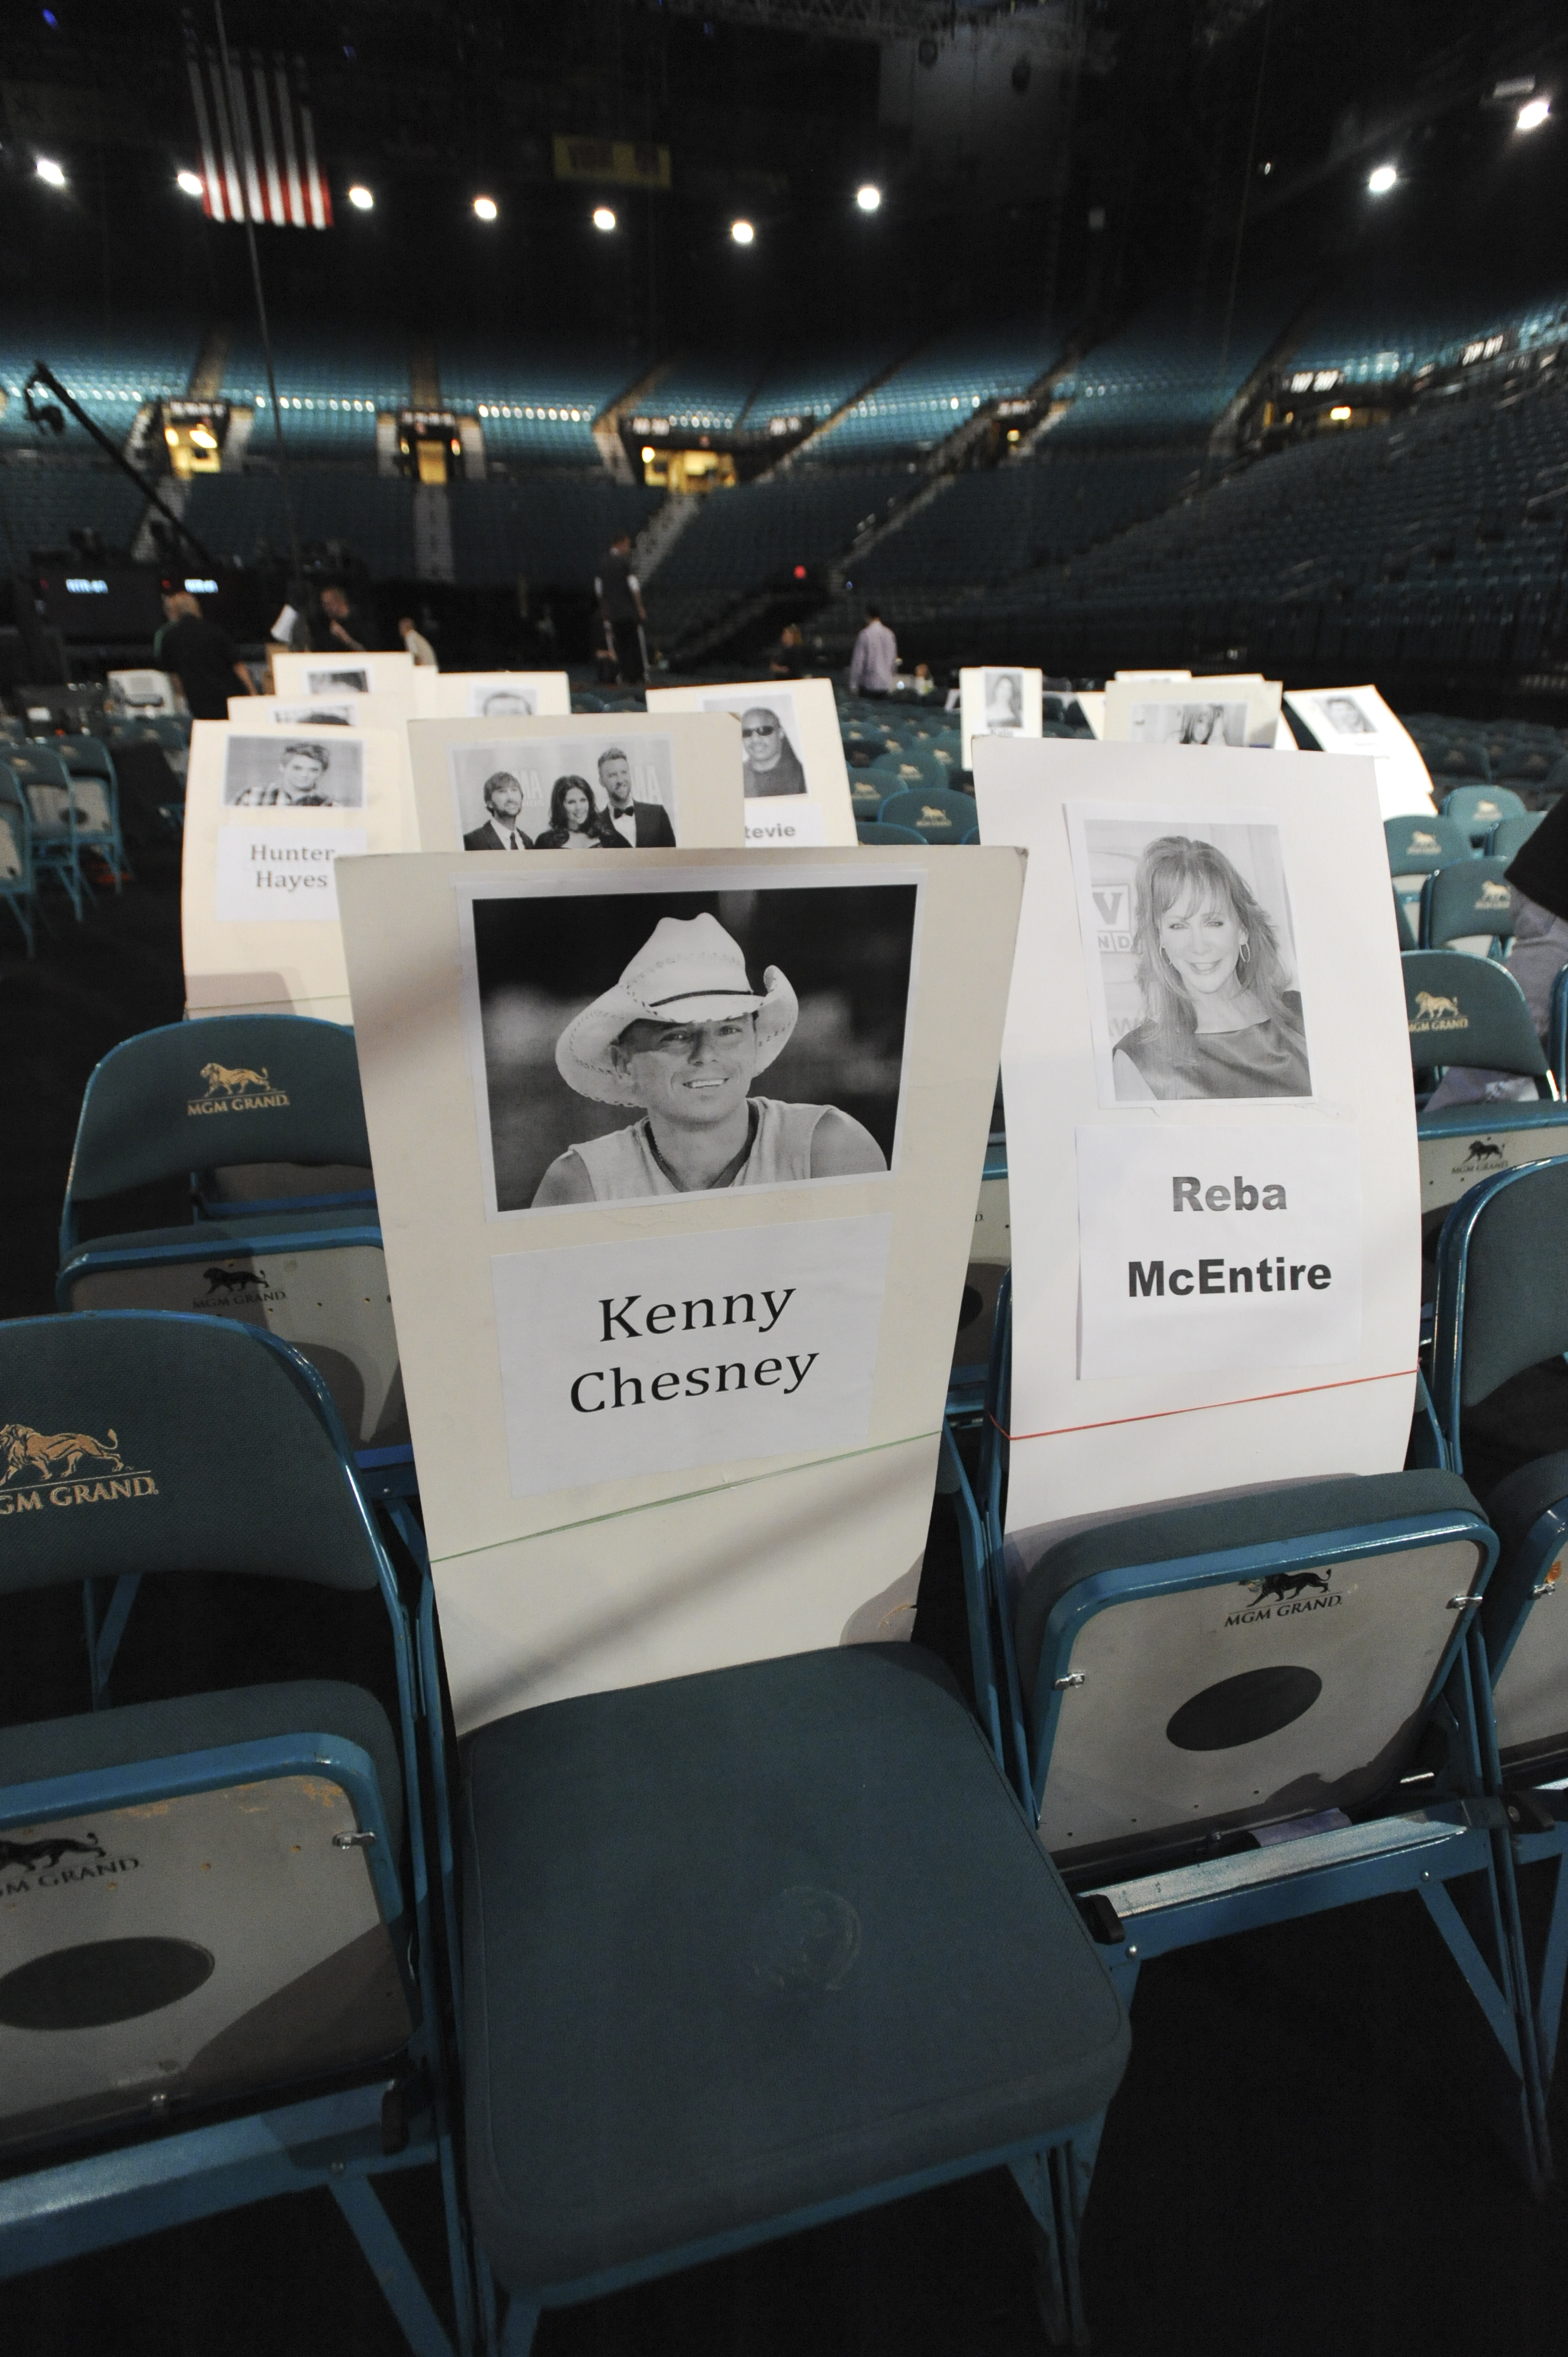 Kenny Chesney and Reba McEntire